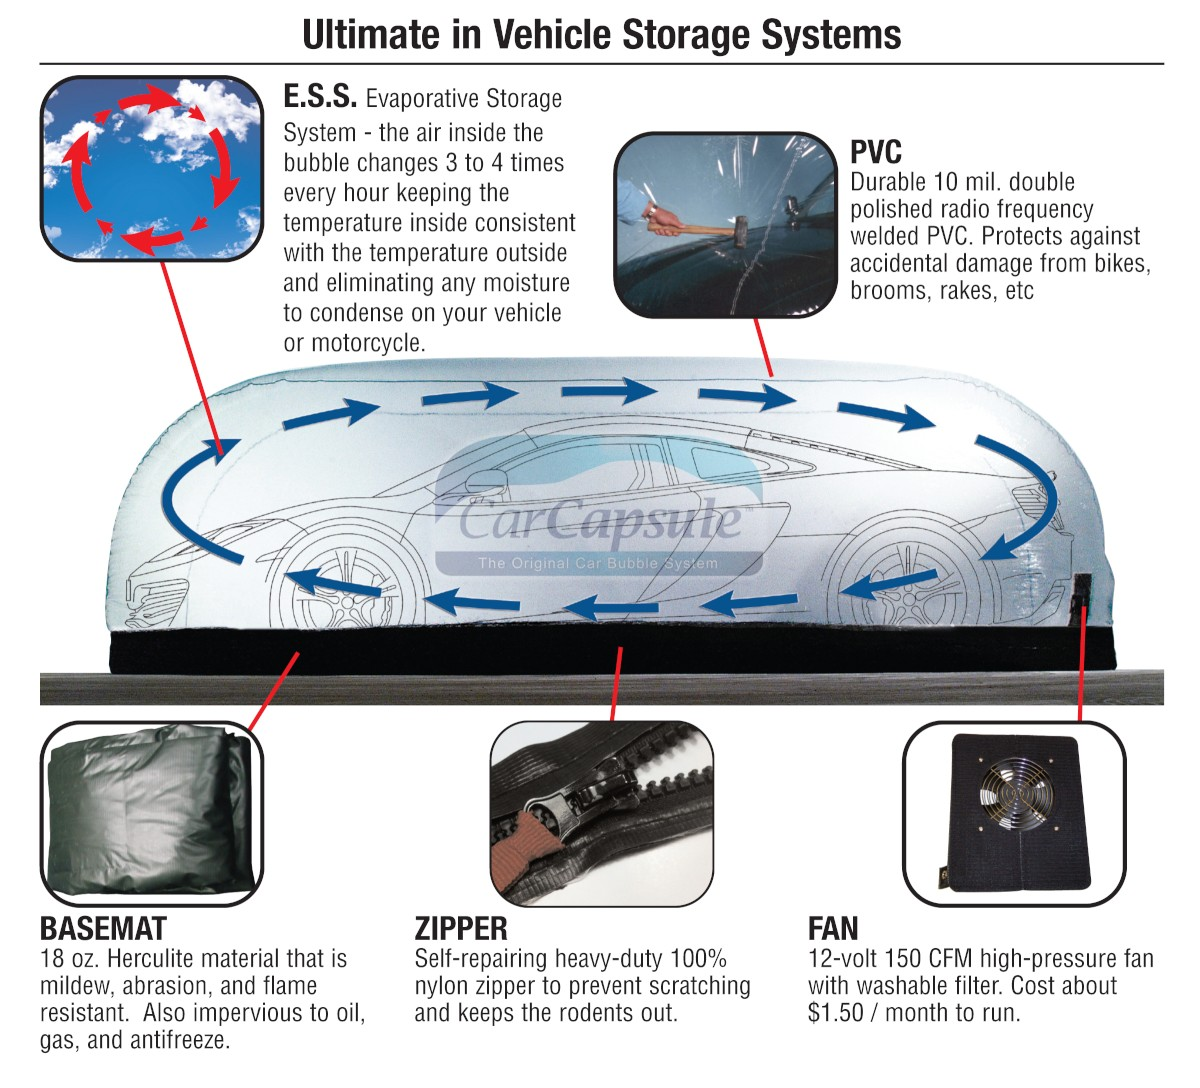 CarCapsule_flow_how_it_works02_11